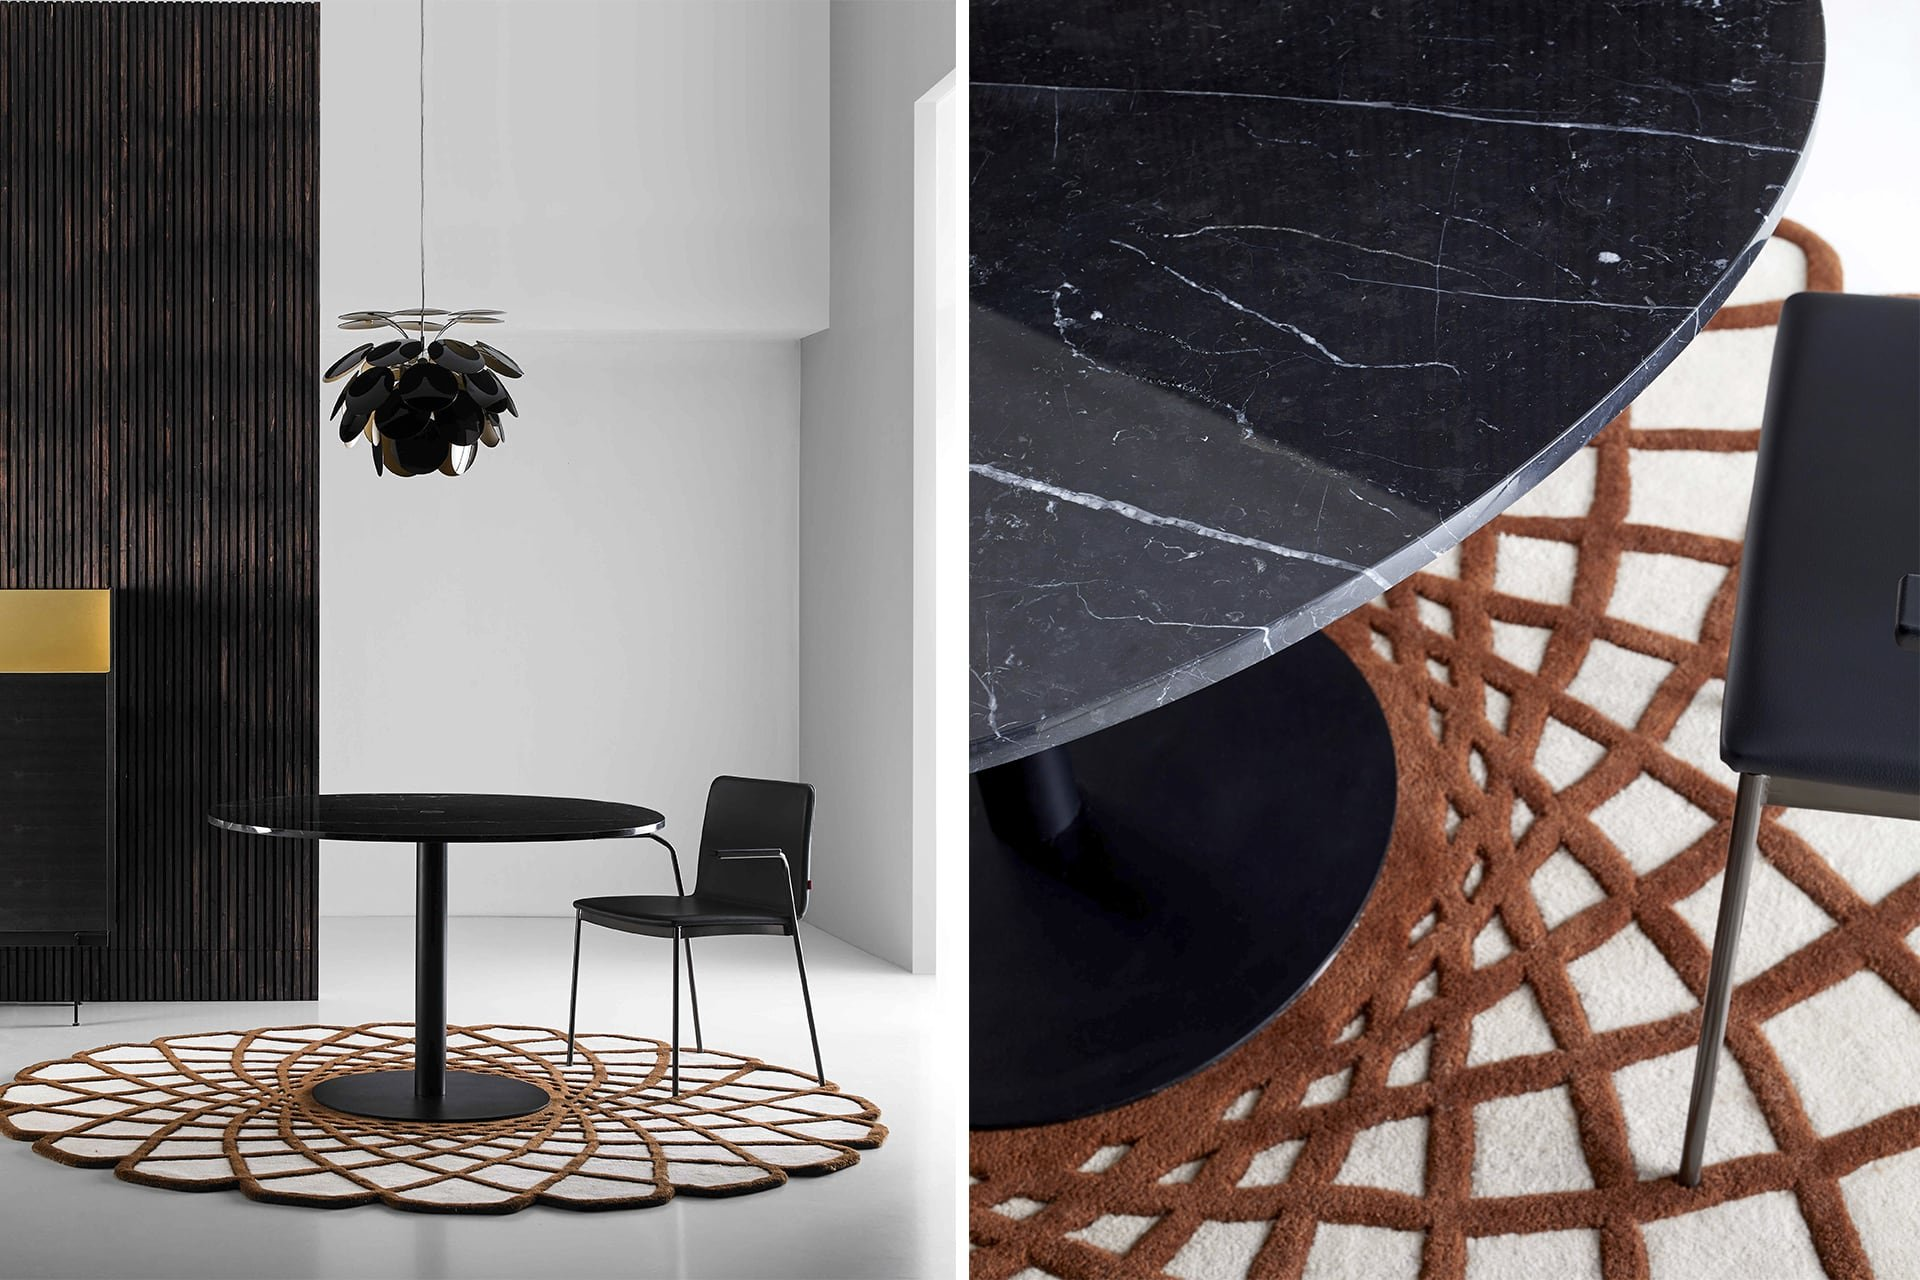 Nucleo Dining Table from Punt Mobles, designed by Victor Carrasco